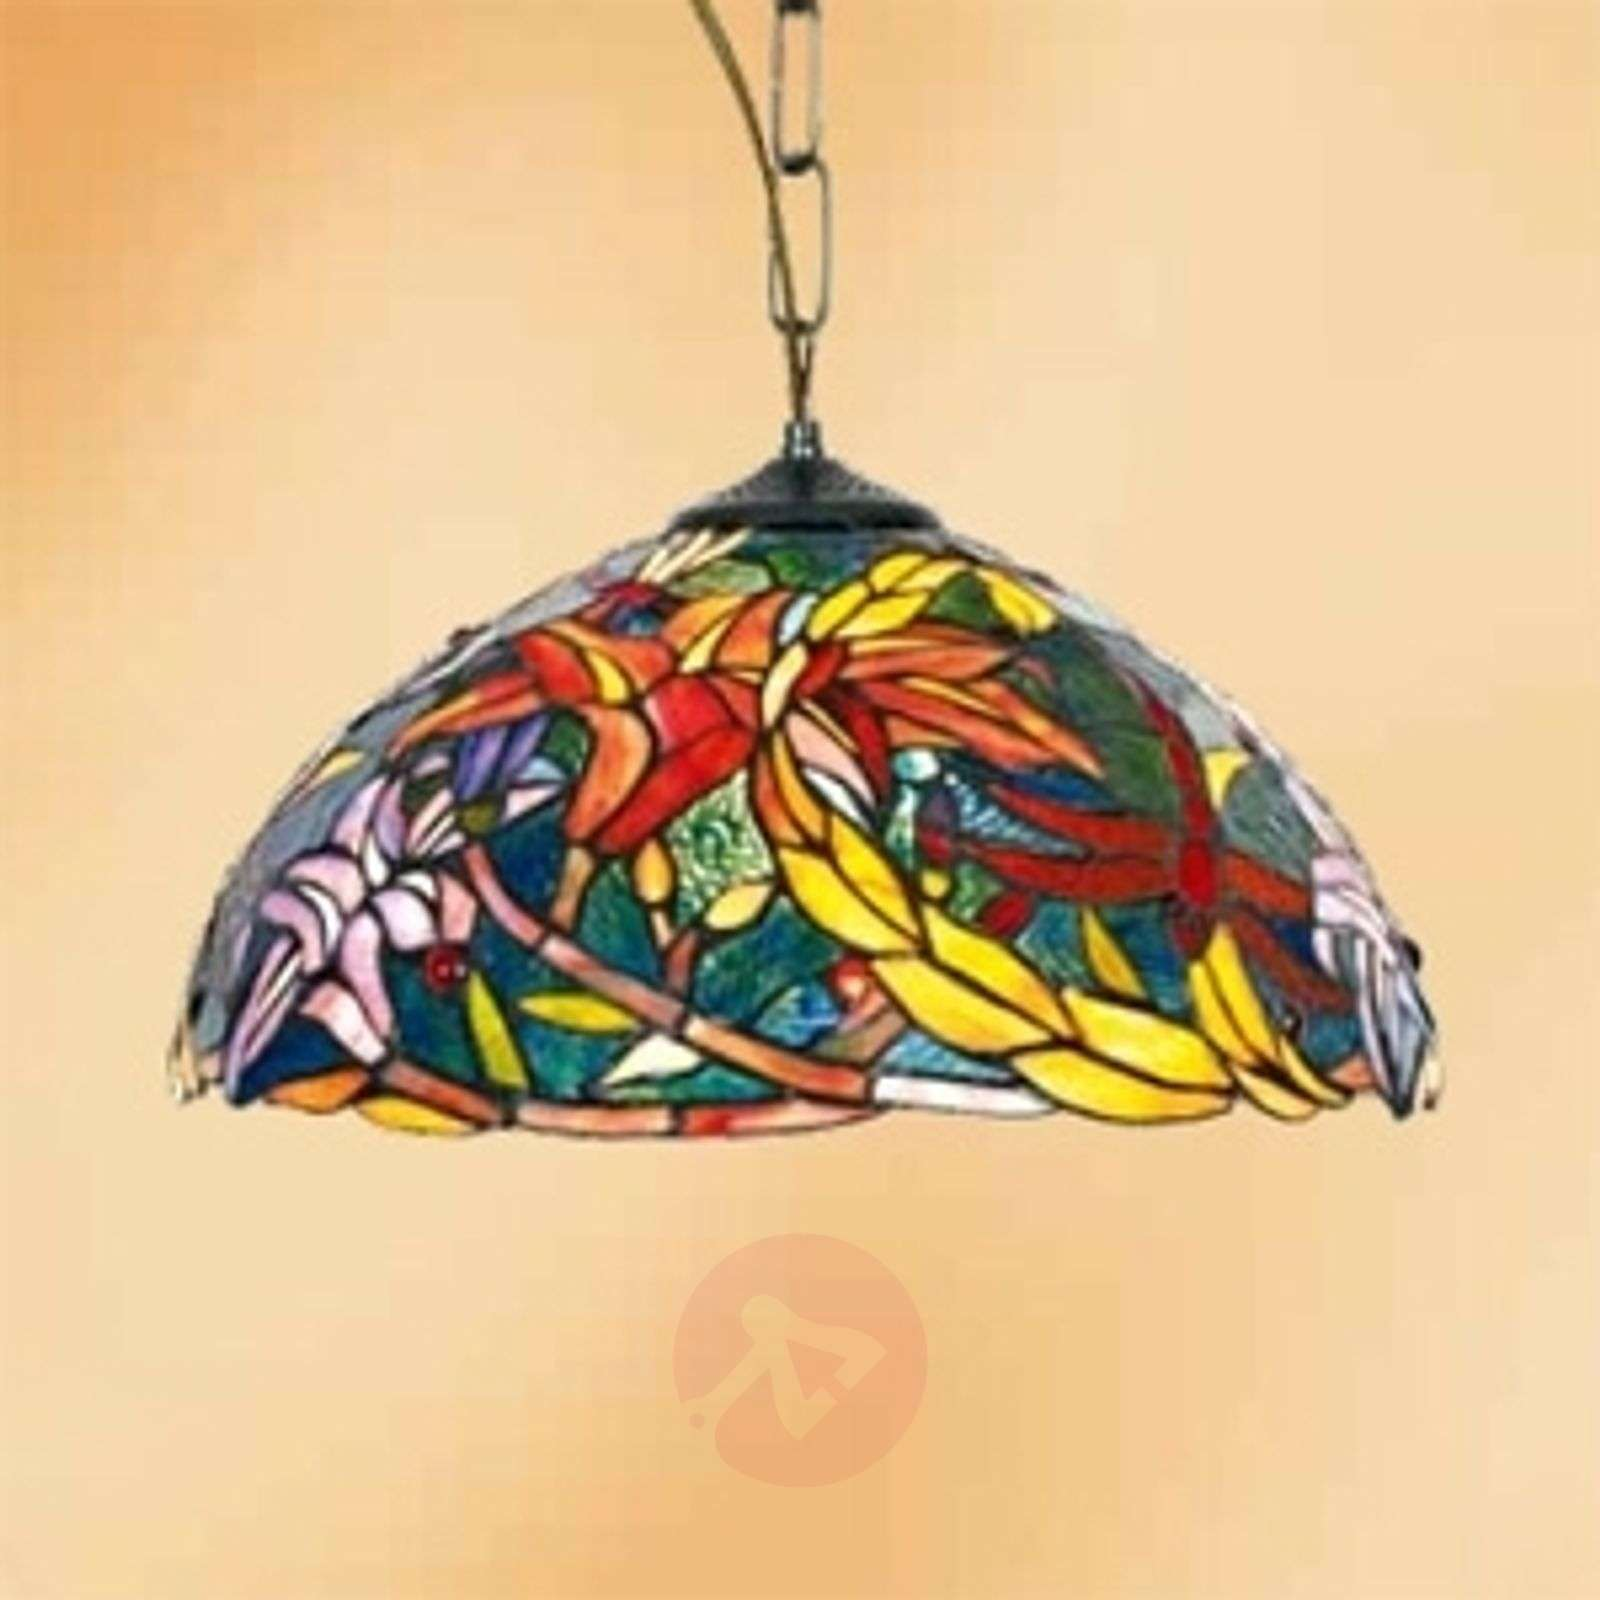 Autumn-inspired hanging light Miley, Tiffany style-1032271-01